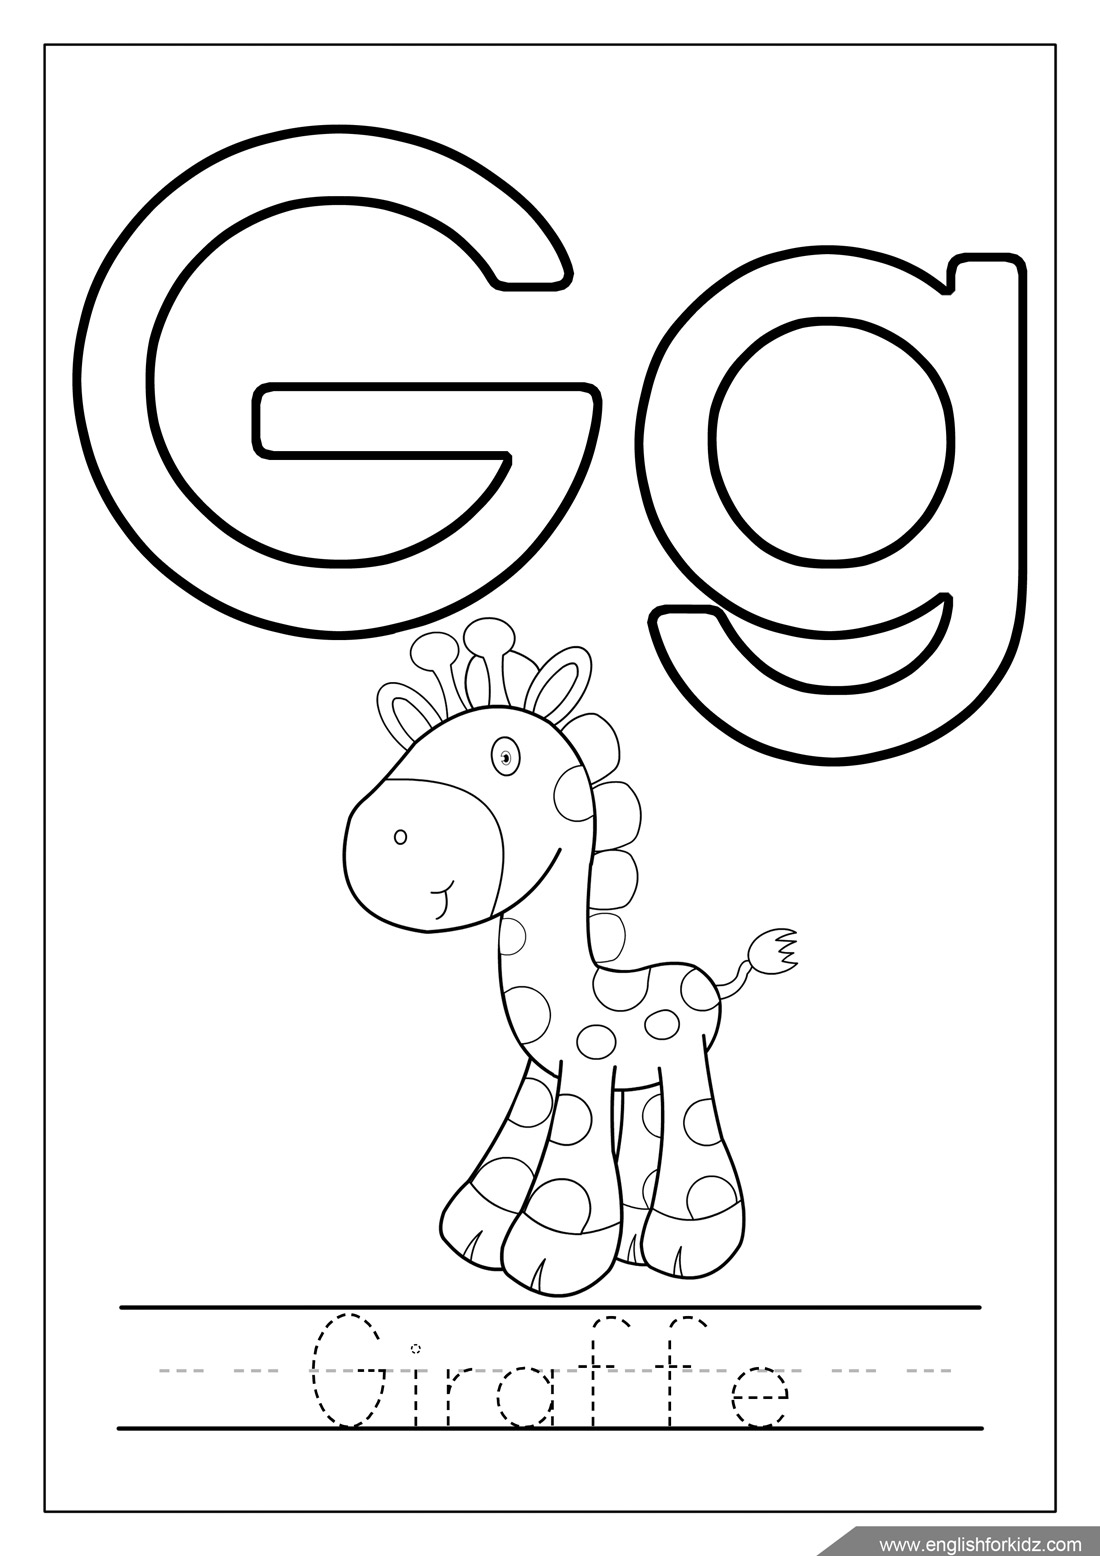 g coloring pictures letter g coloring pages preschool coloring home g coloring pictures